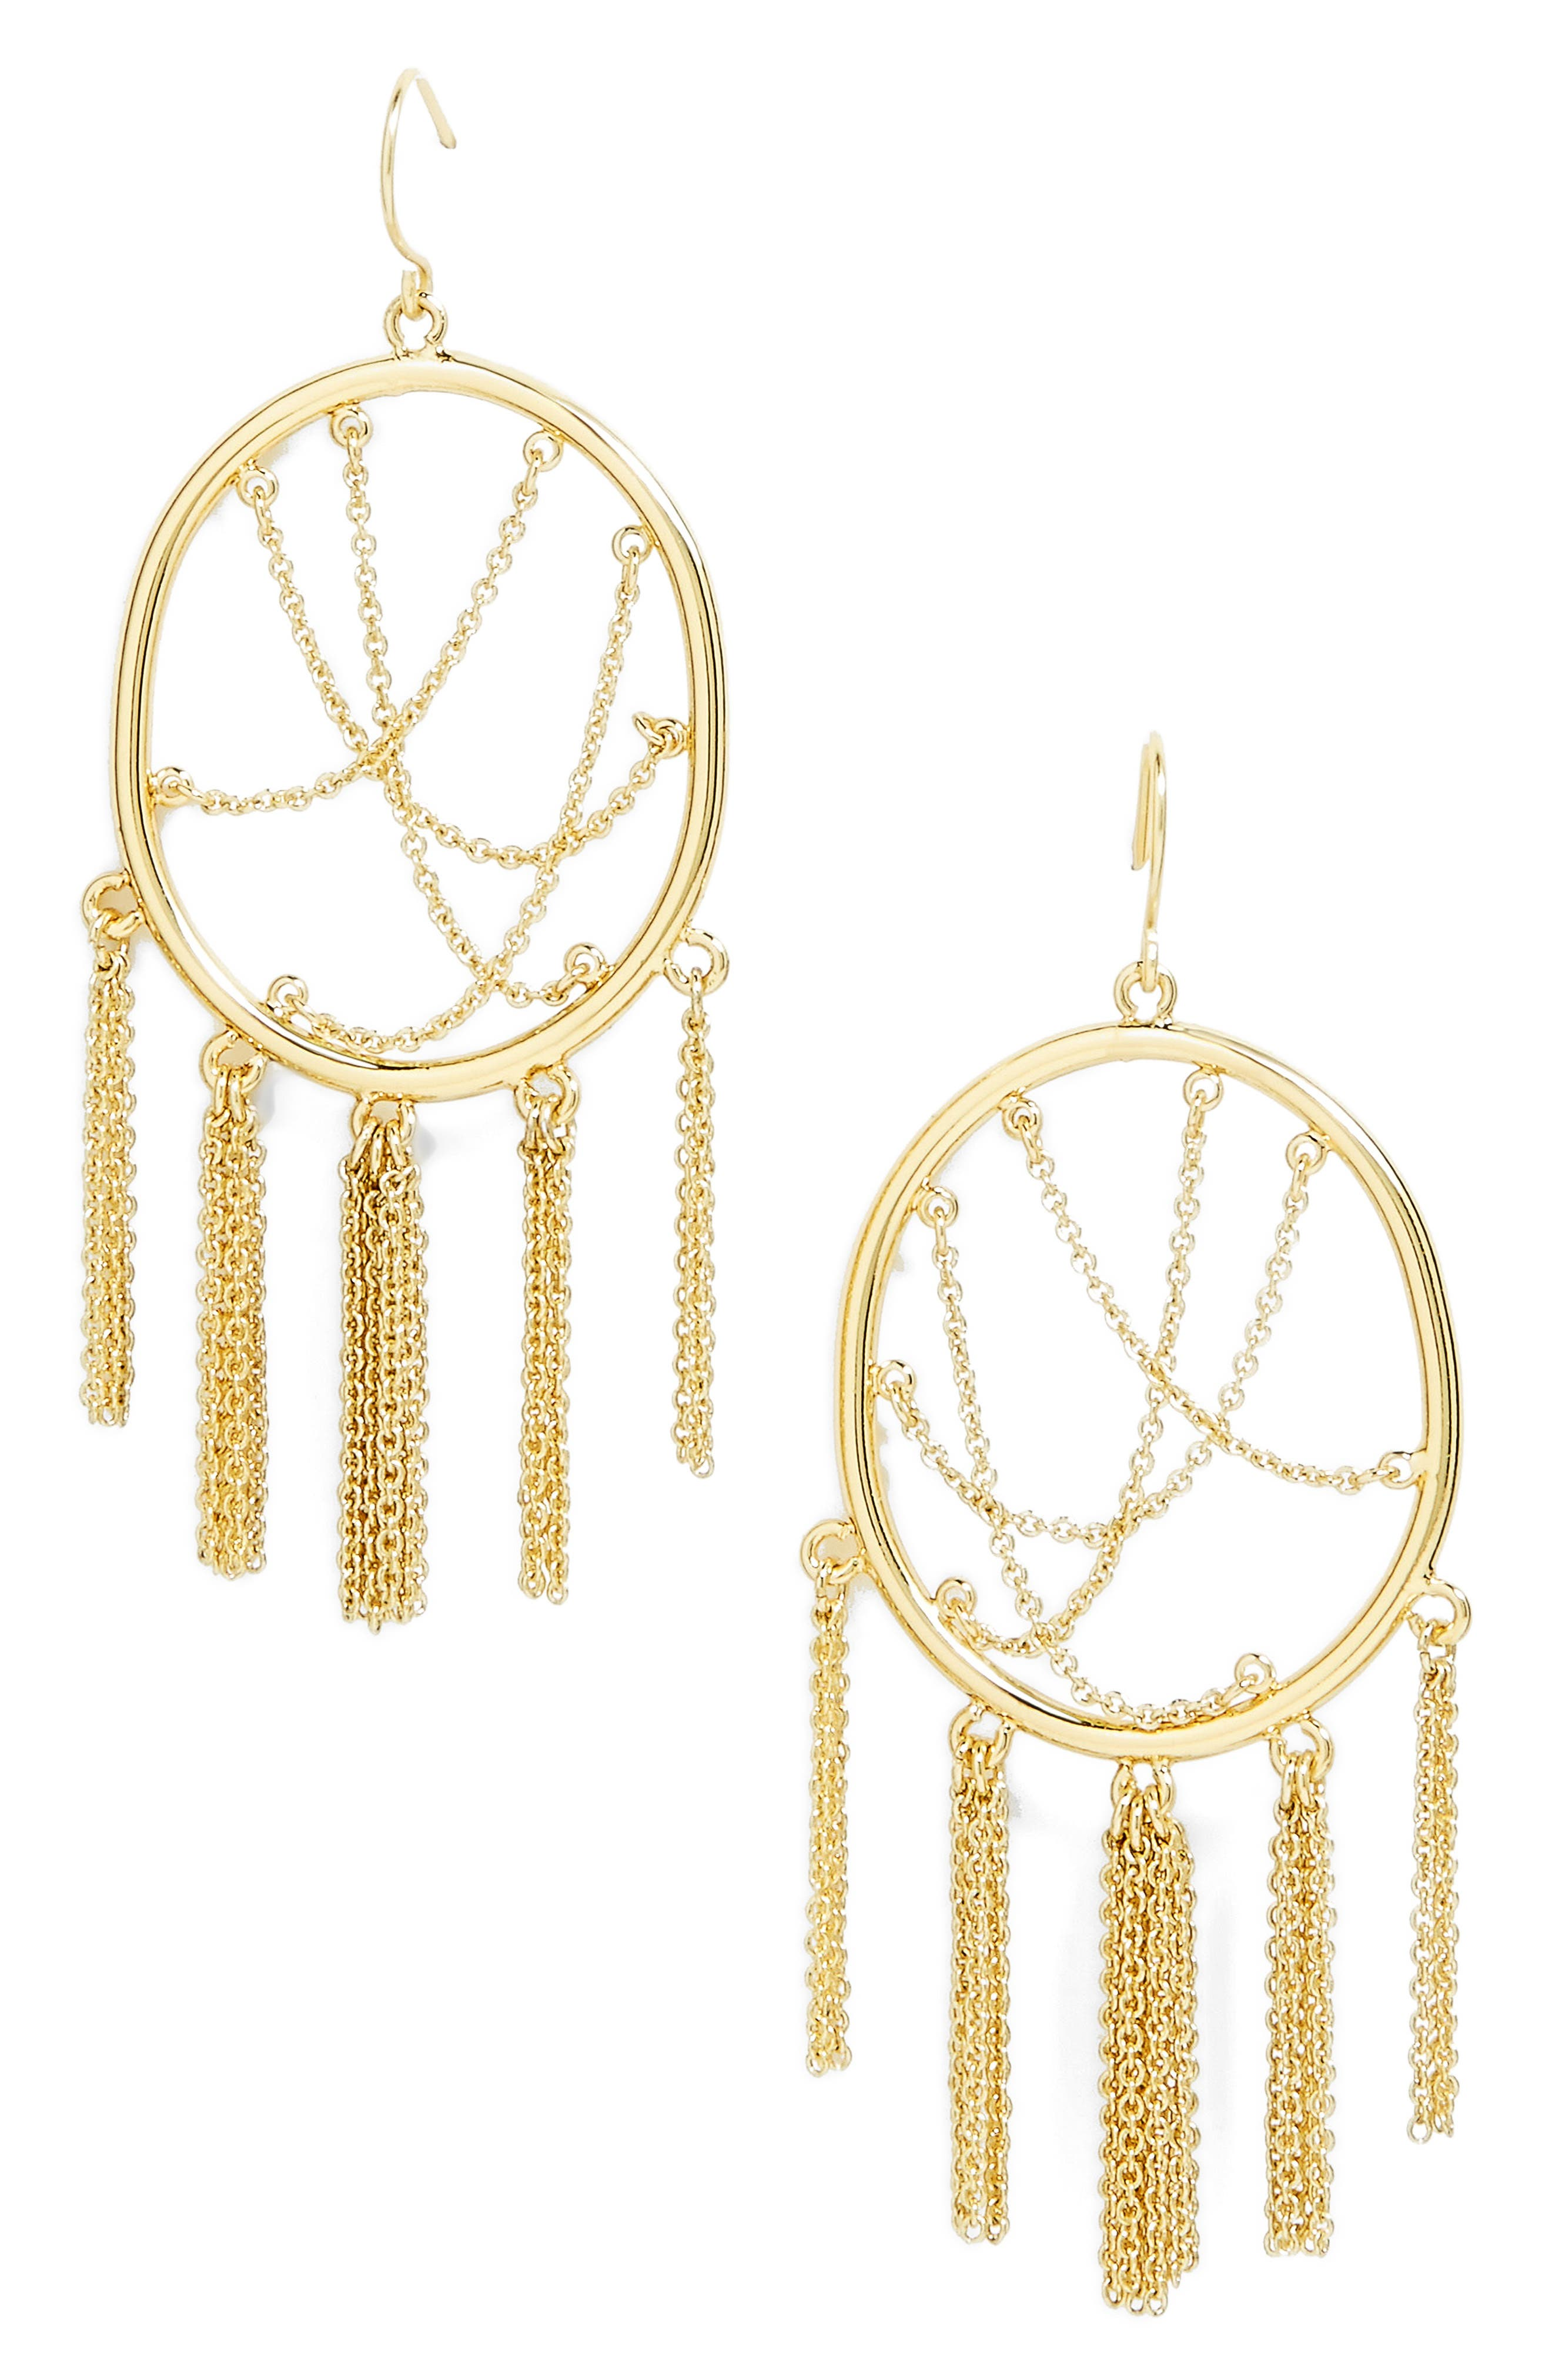 BAUBLEBAR Allura Drop Earrings, Main, color, 710